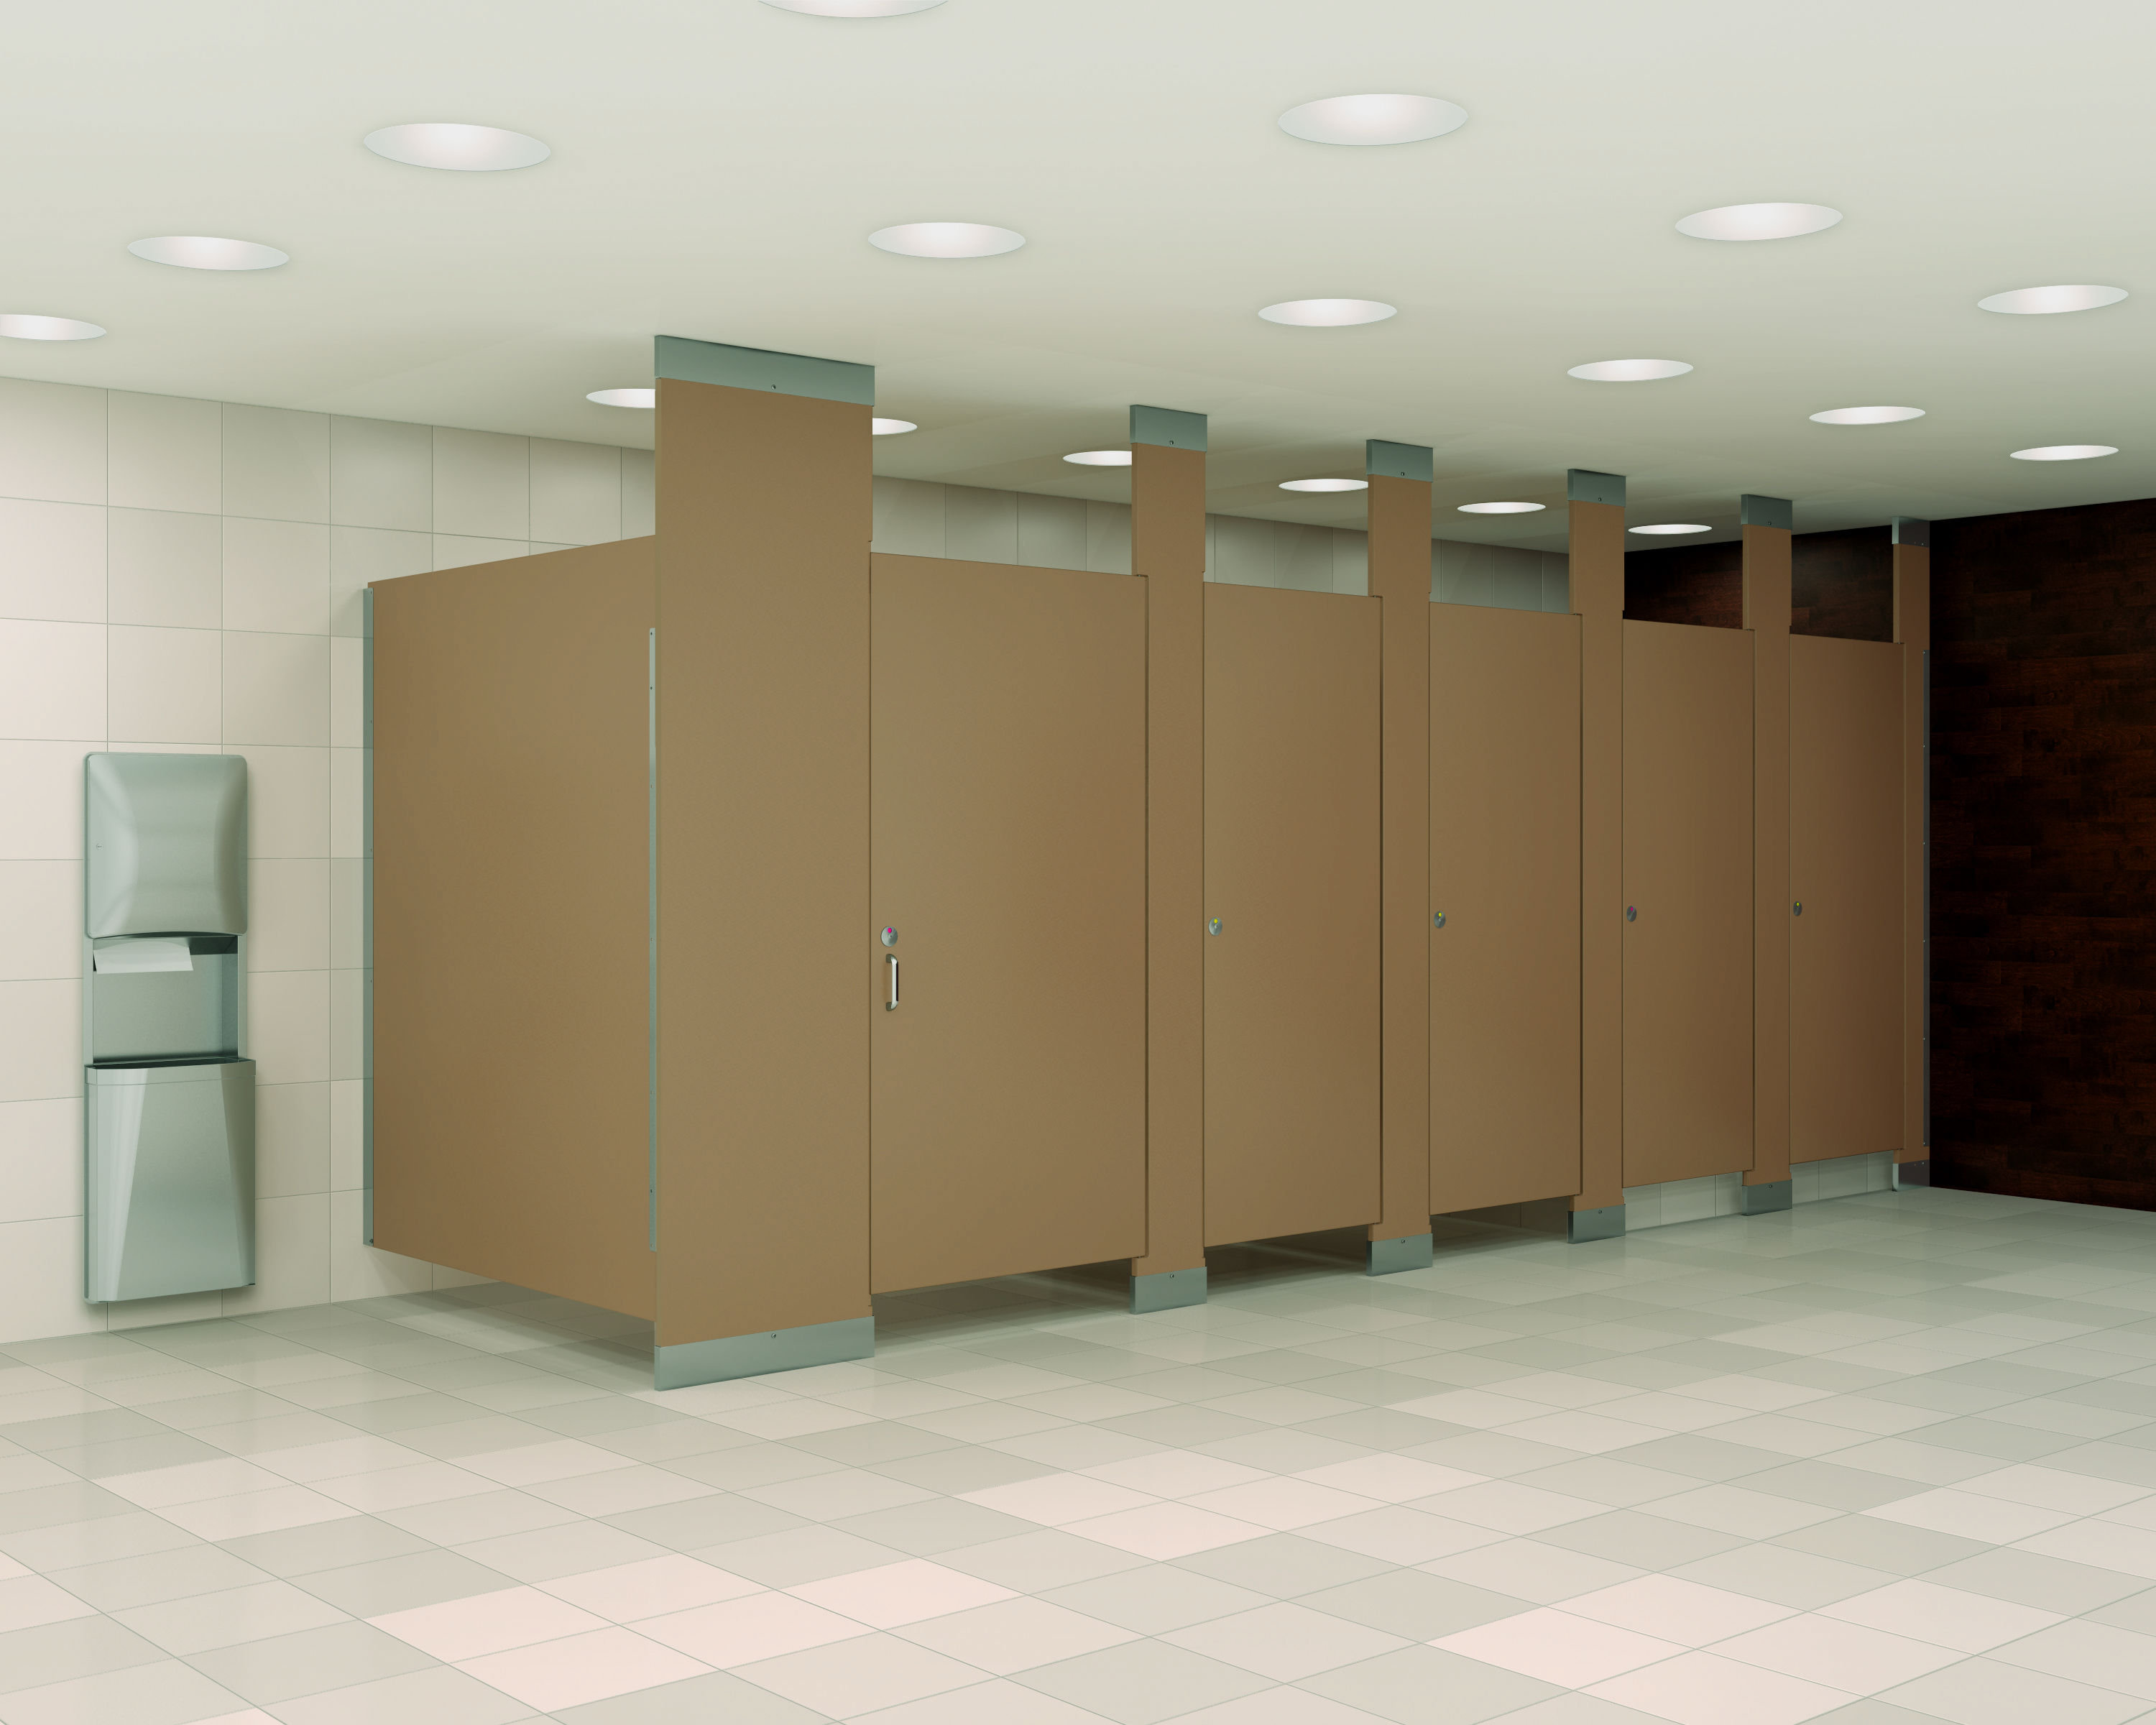 Powder Room Privacy Stalls Partitions Sales And Design - Partitions for bathroom stalls